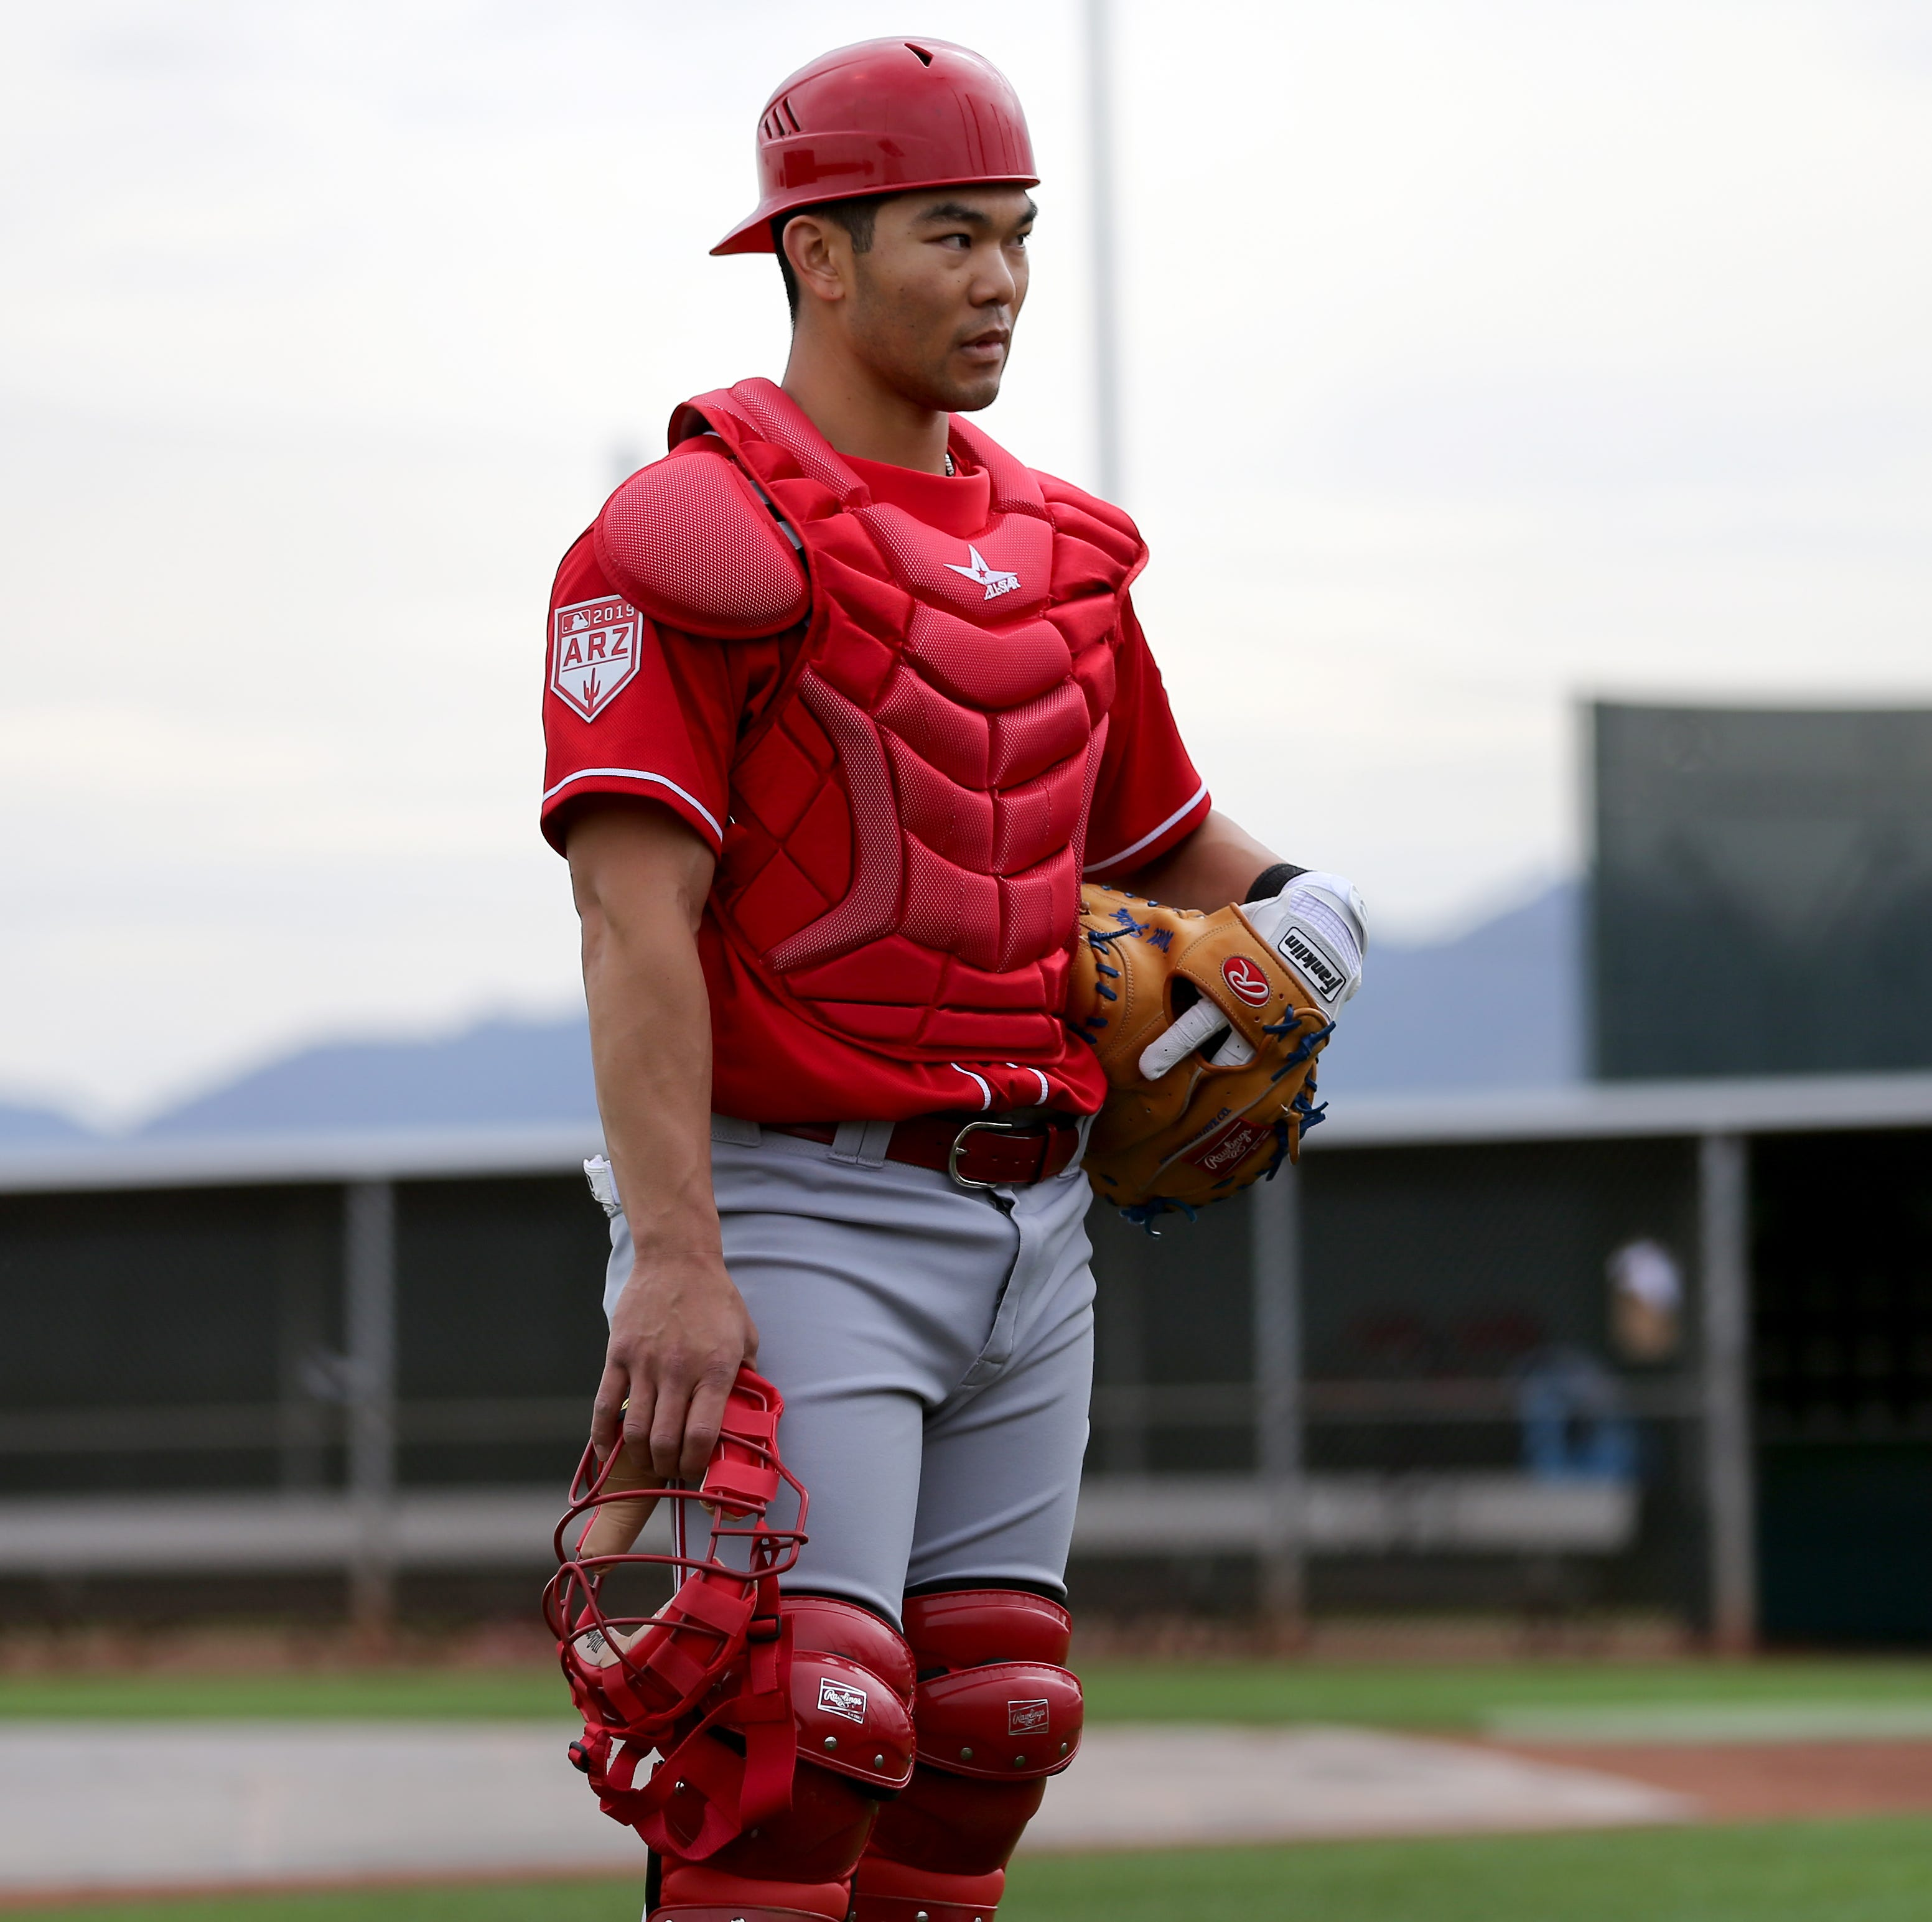 New position, no problem for Cincinnati Reds catcher, Rule 5 pick Connor Joe